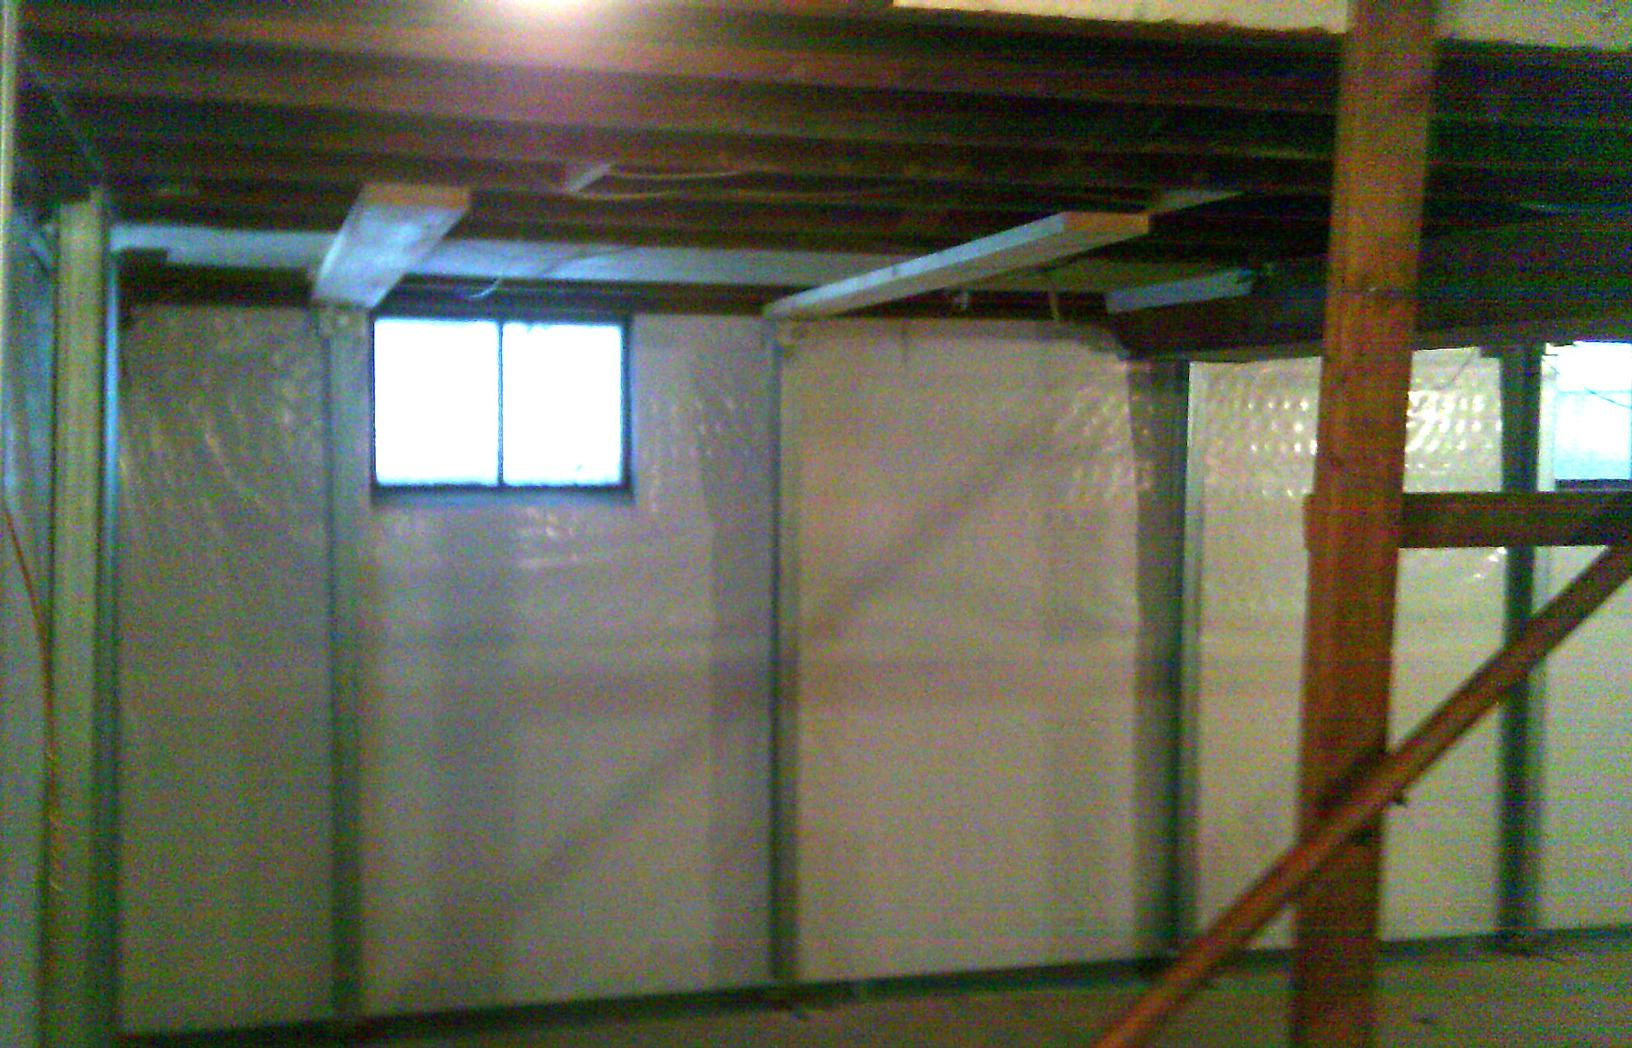 With the installation of patented products, this basement is dryer and safer.